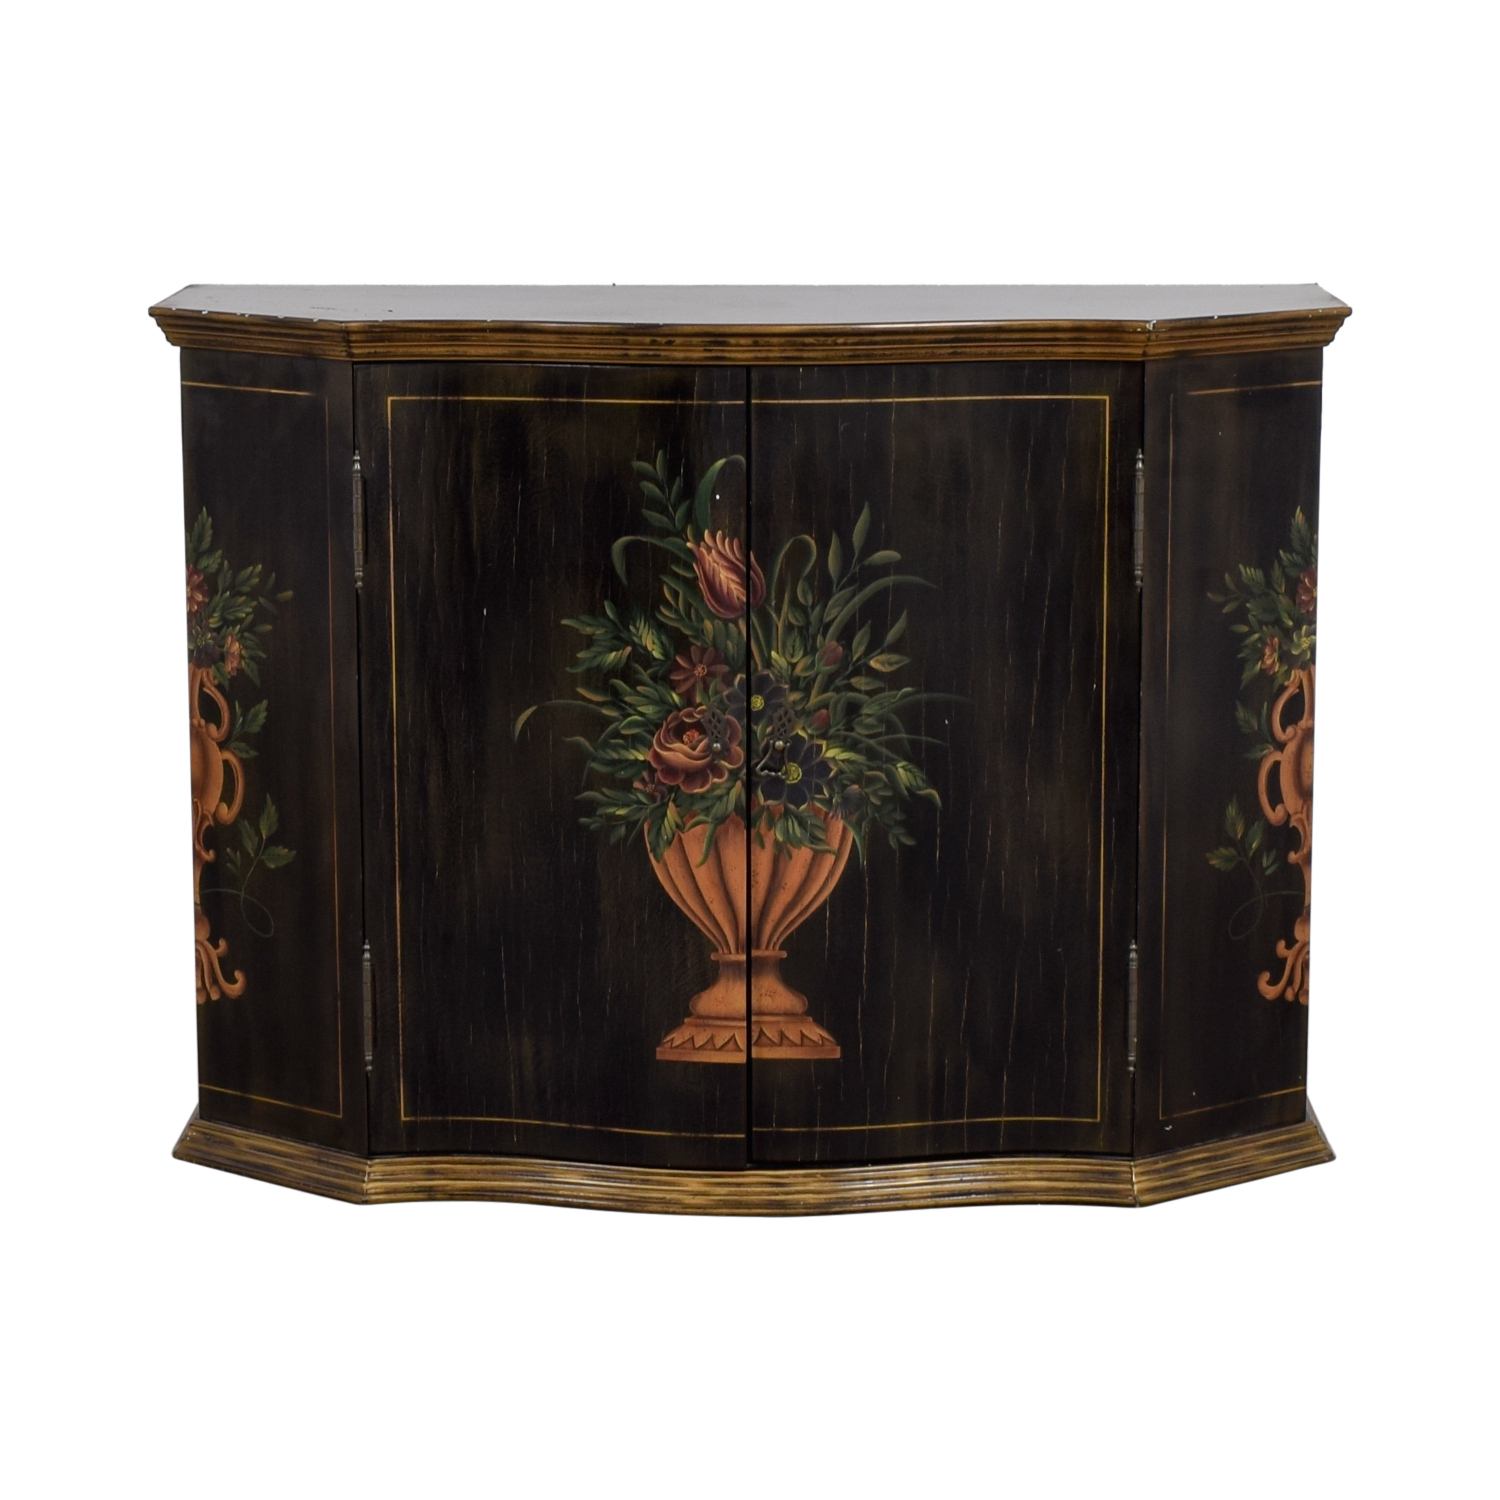 Ethan Allen Ethan Allen Floral Hand Painted Cabinet used